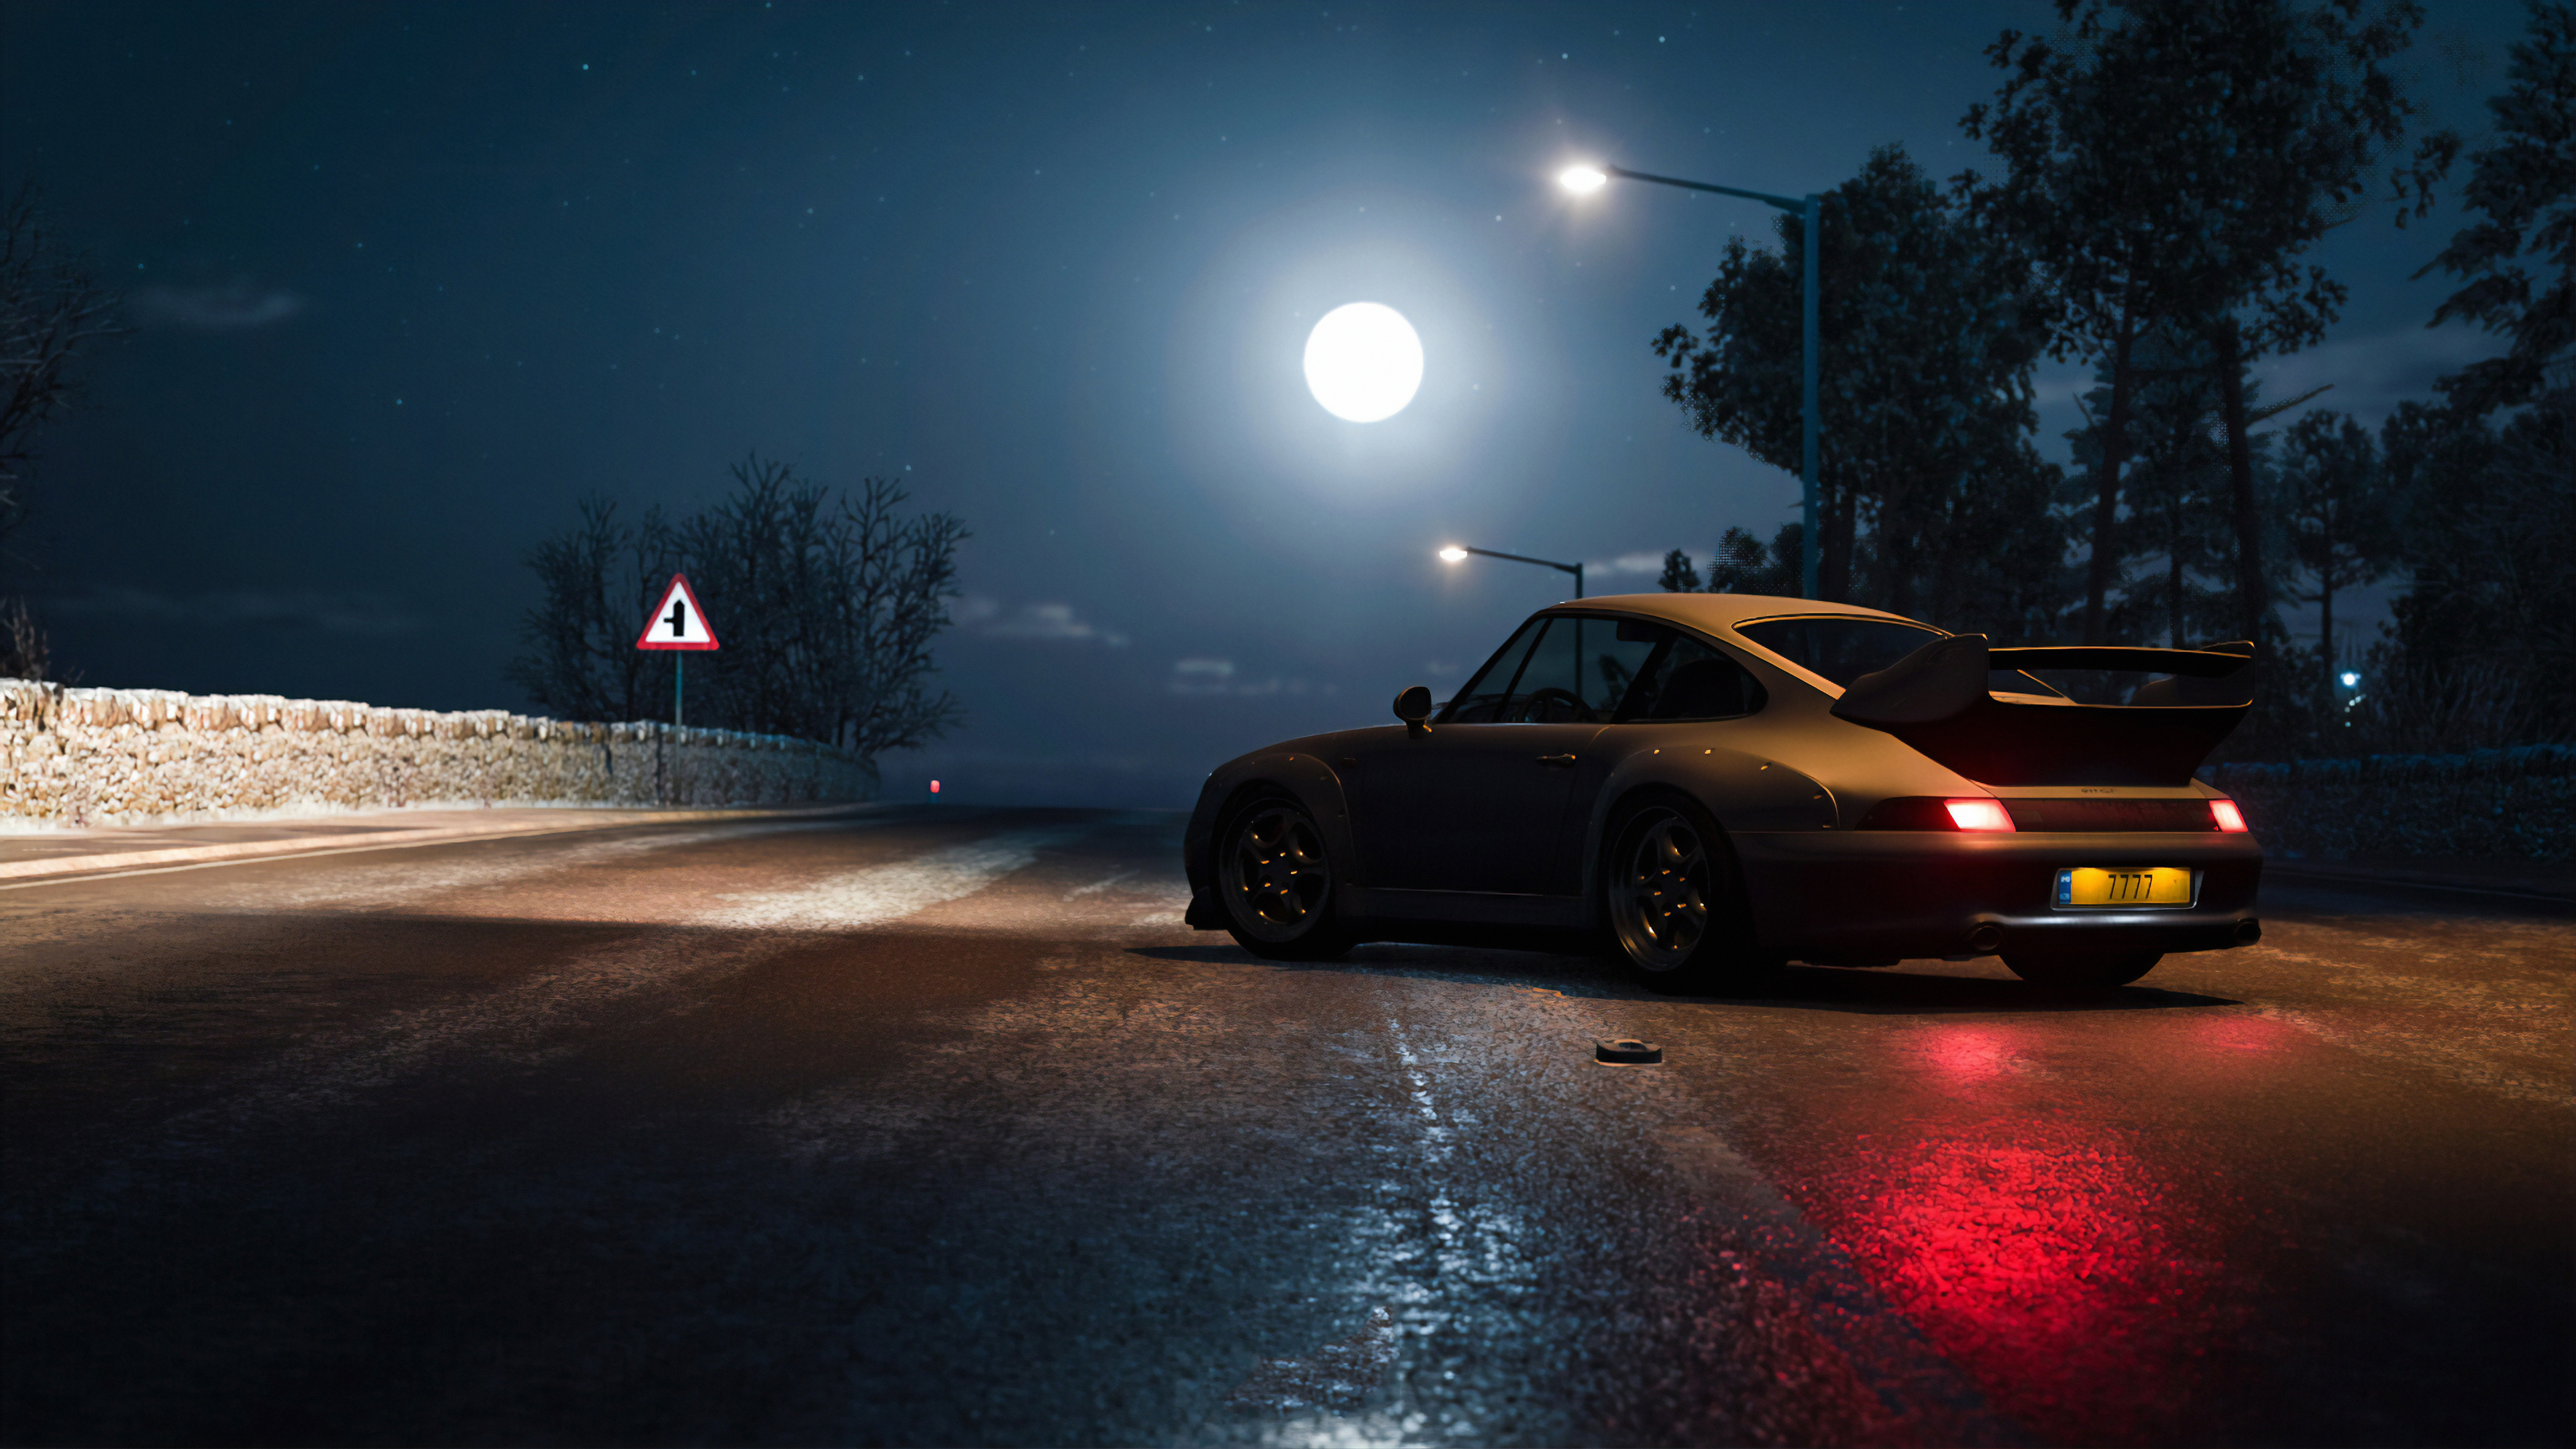 While maryland has a population of nearly 6 million on its own, the metro region, which directly impacts highway congestion, has a population topping 8 million. Porsche At Night Hd Cars 4k Wallpapers Images Backgrounds Photos And Pictures